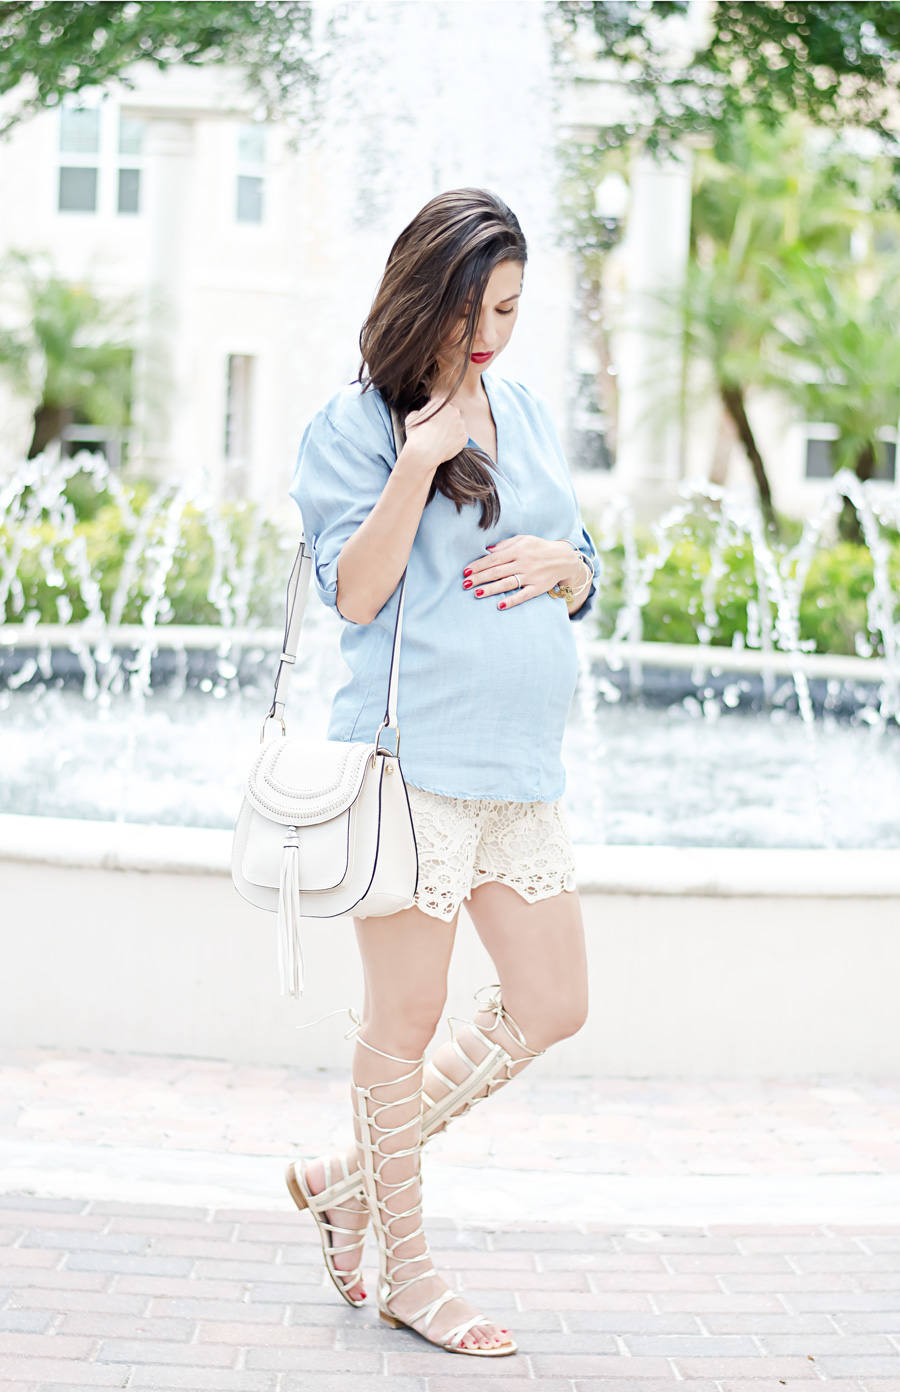 Stuart Weitzman Gold Gladiator Sandals, Chloe Hudson Handbag, Chambray and Lace, Mossimo Chambray Denim Top, Olian Lace Shorts